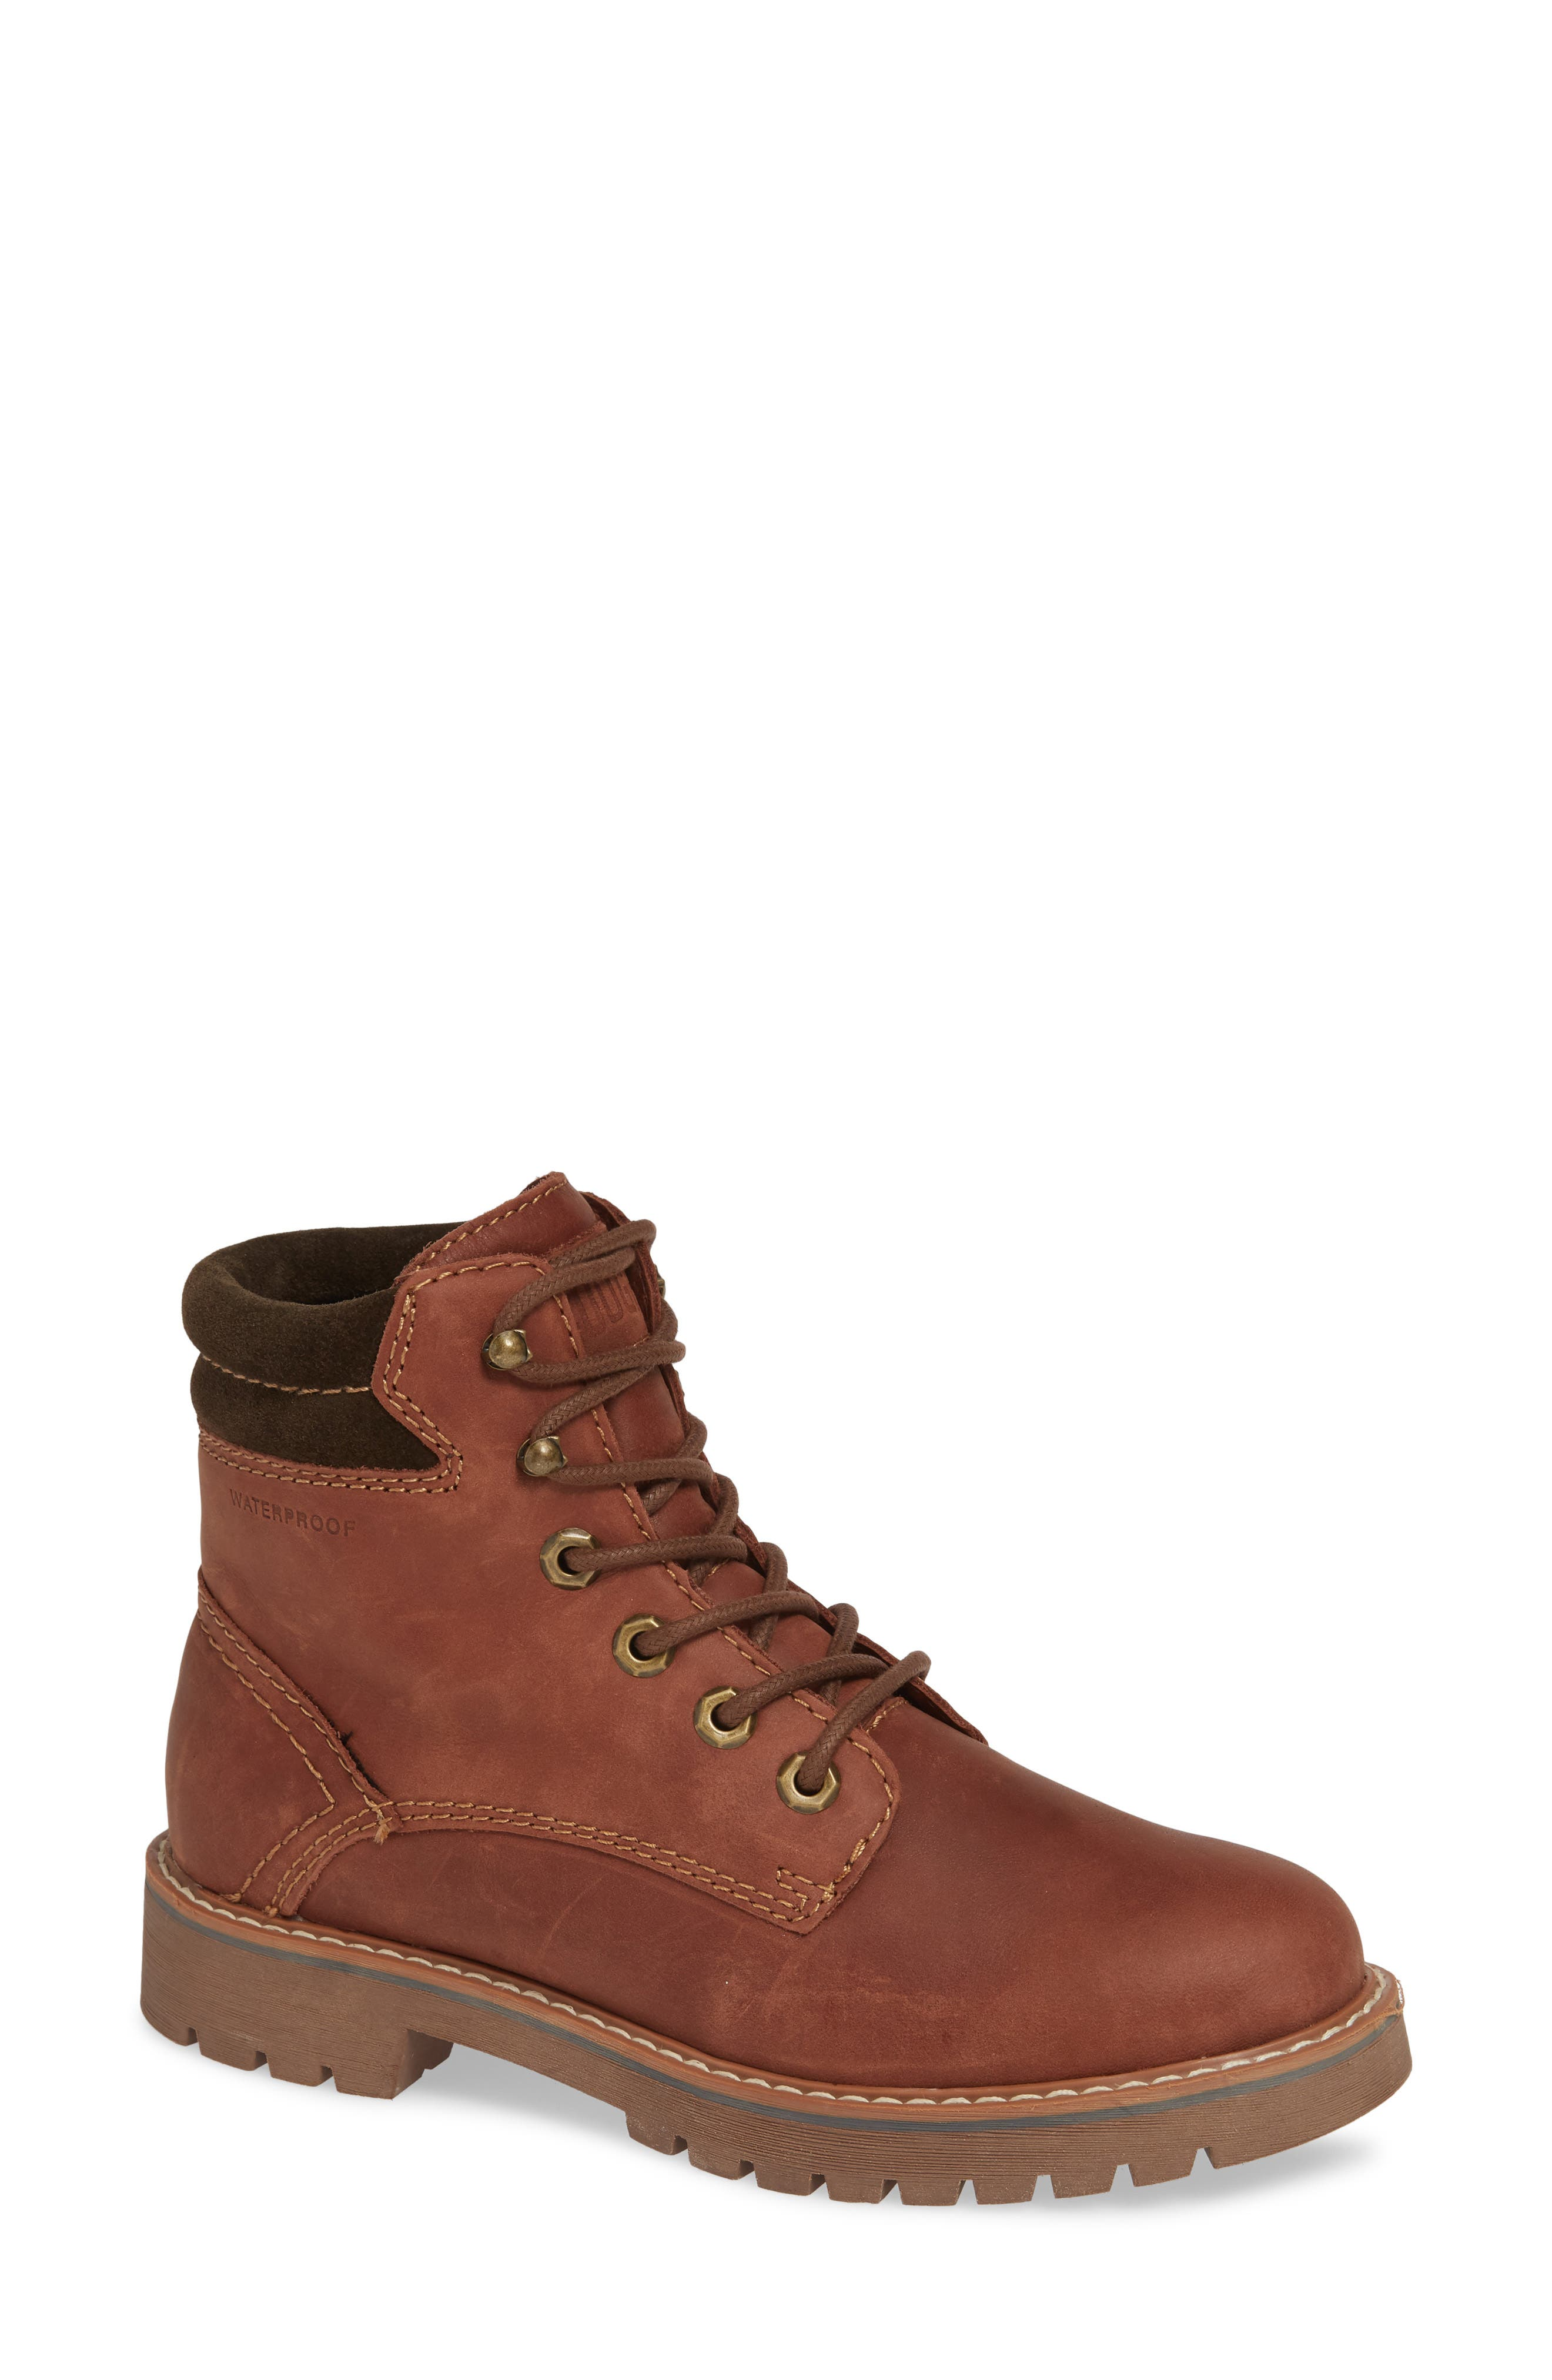 Heston Waterproof Insulated Hiking Boot,                             Main thumbnail 1, color,                             BROWN LEATHER